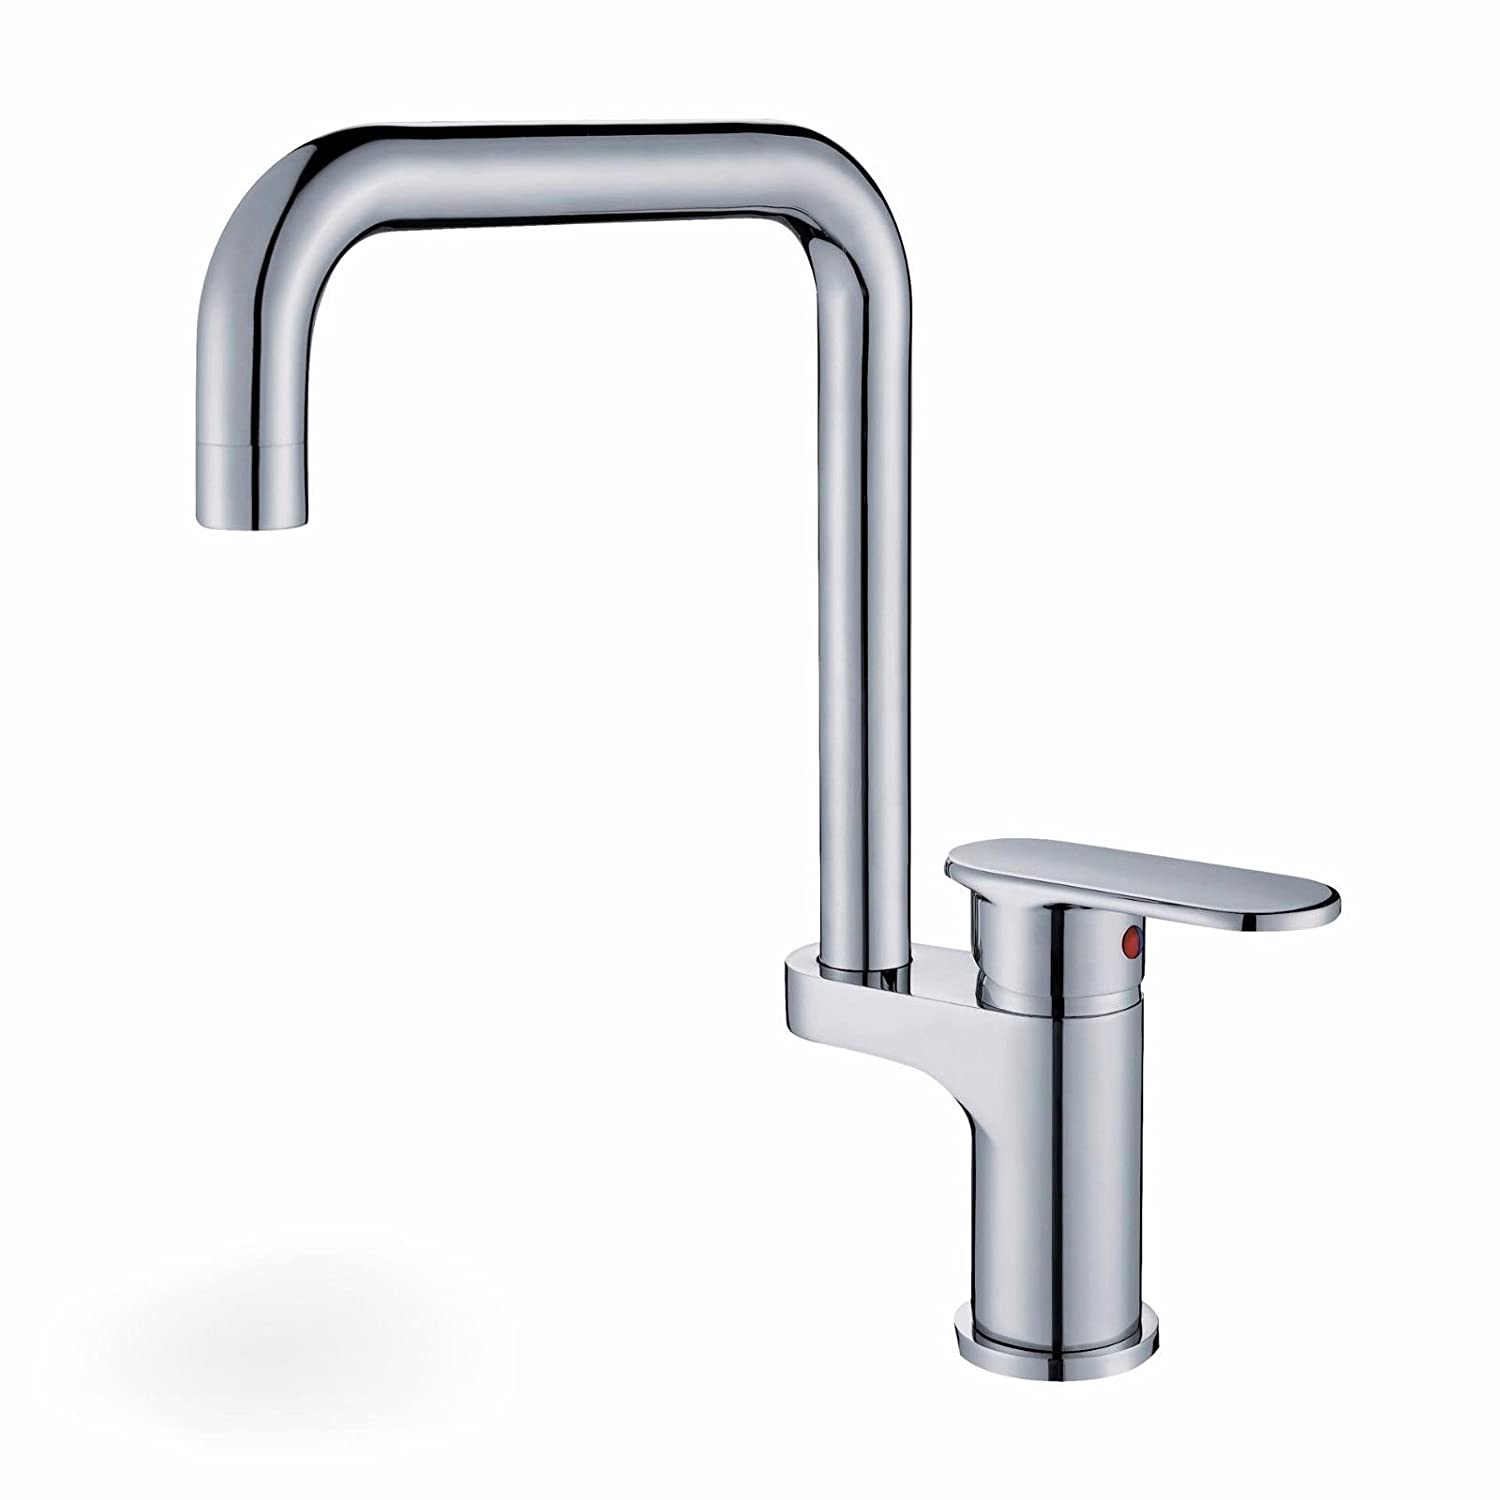 AQMMi Basin Sink Tap Bathroom Bar Faucet Brass Hot and Cold Water Bathroom Basin Sink Faucet